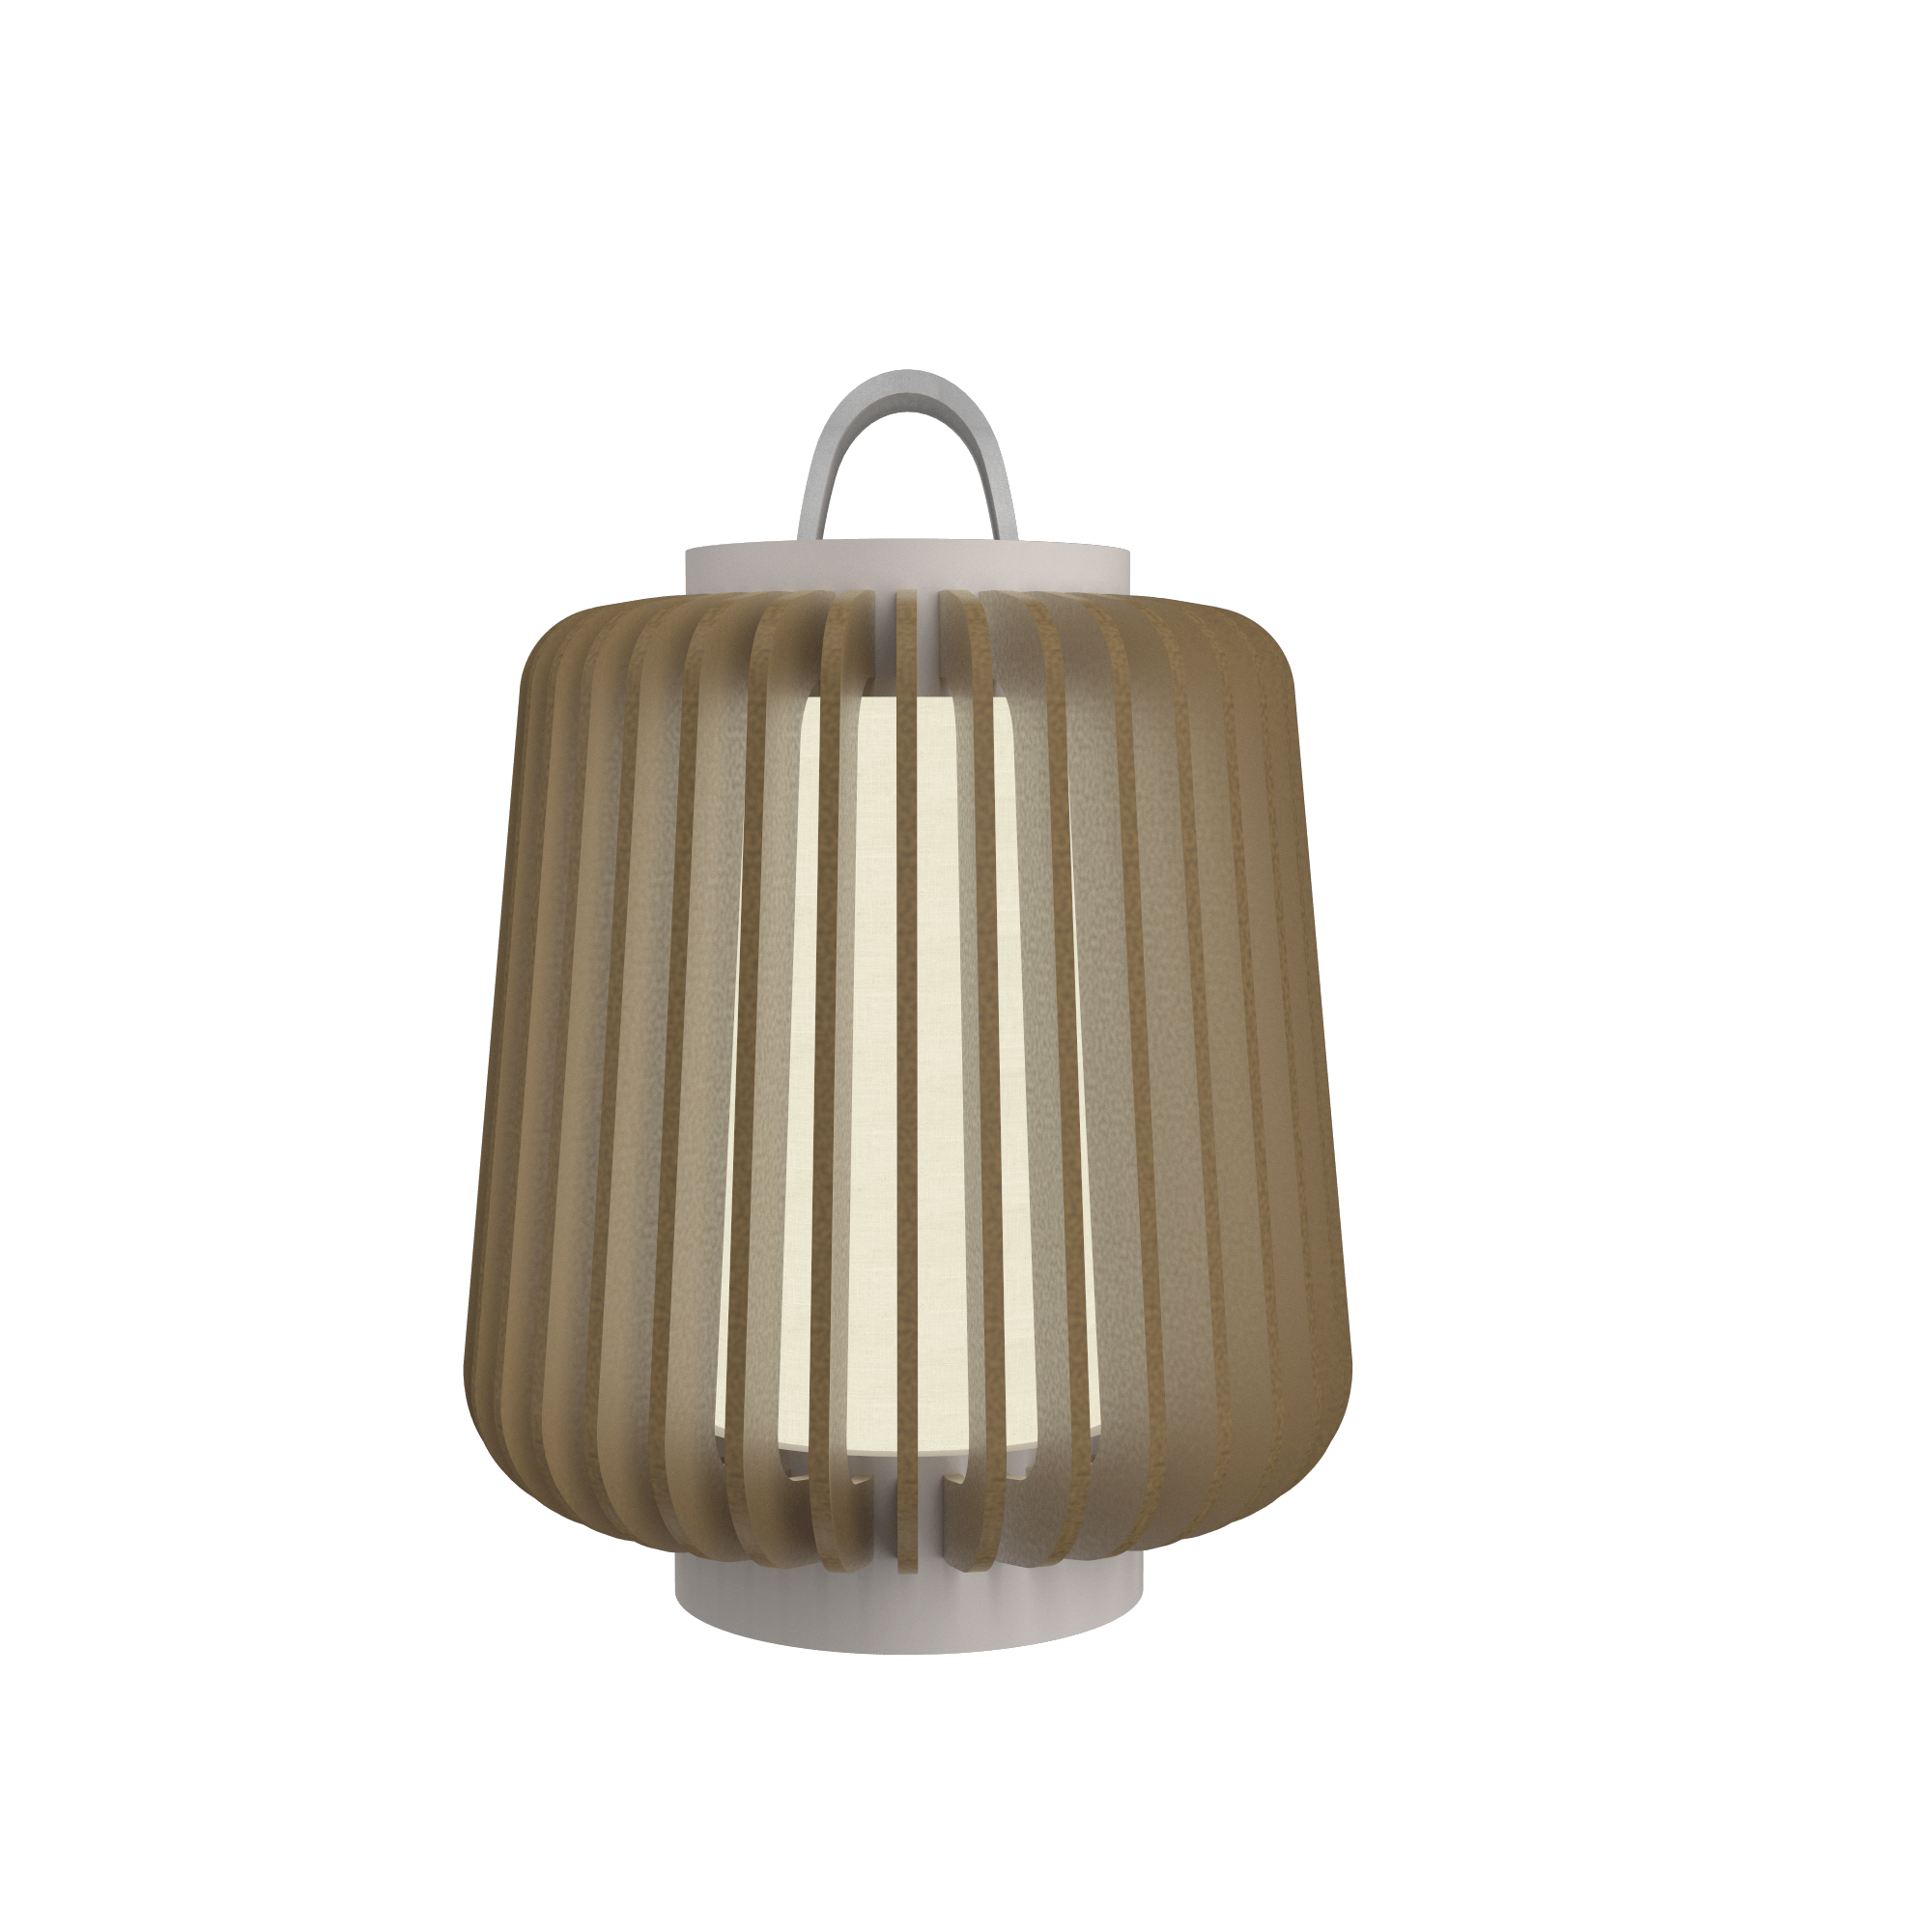 Table Lamp Accord Stecche Di Legno 7059 - Stecche Di Legno Line Accord Lighting | 27. Gold